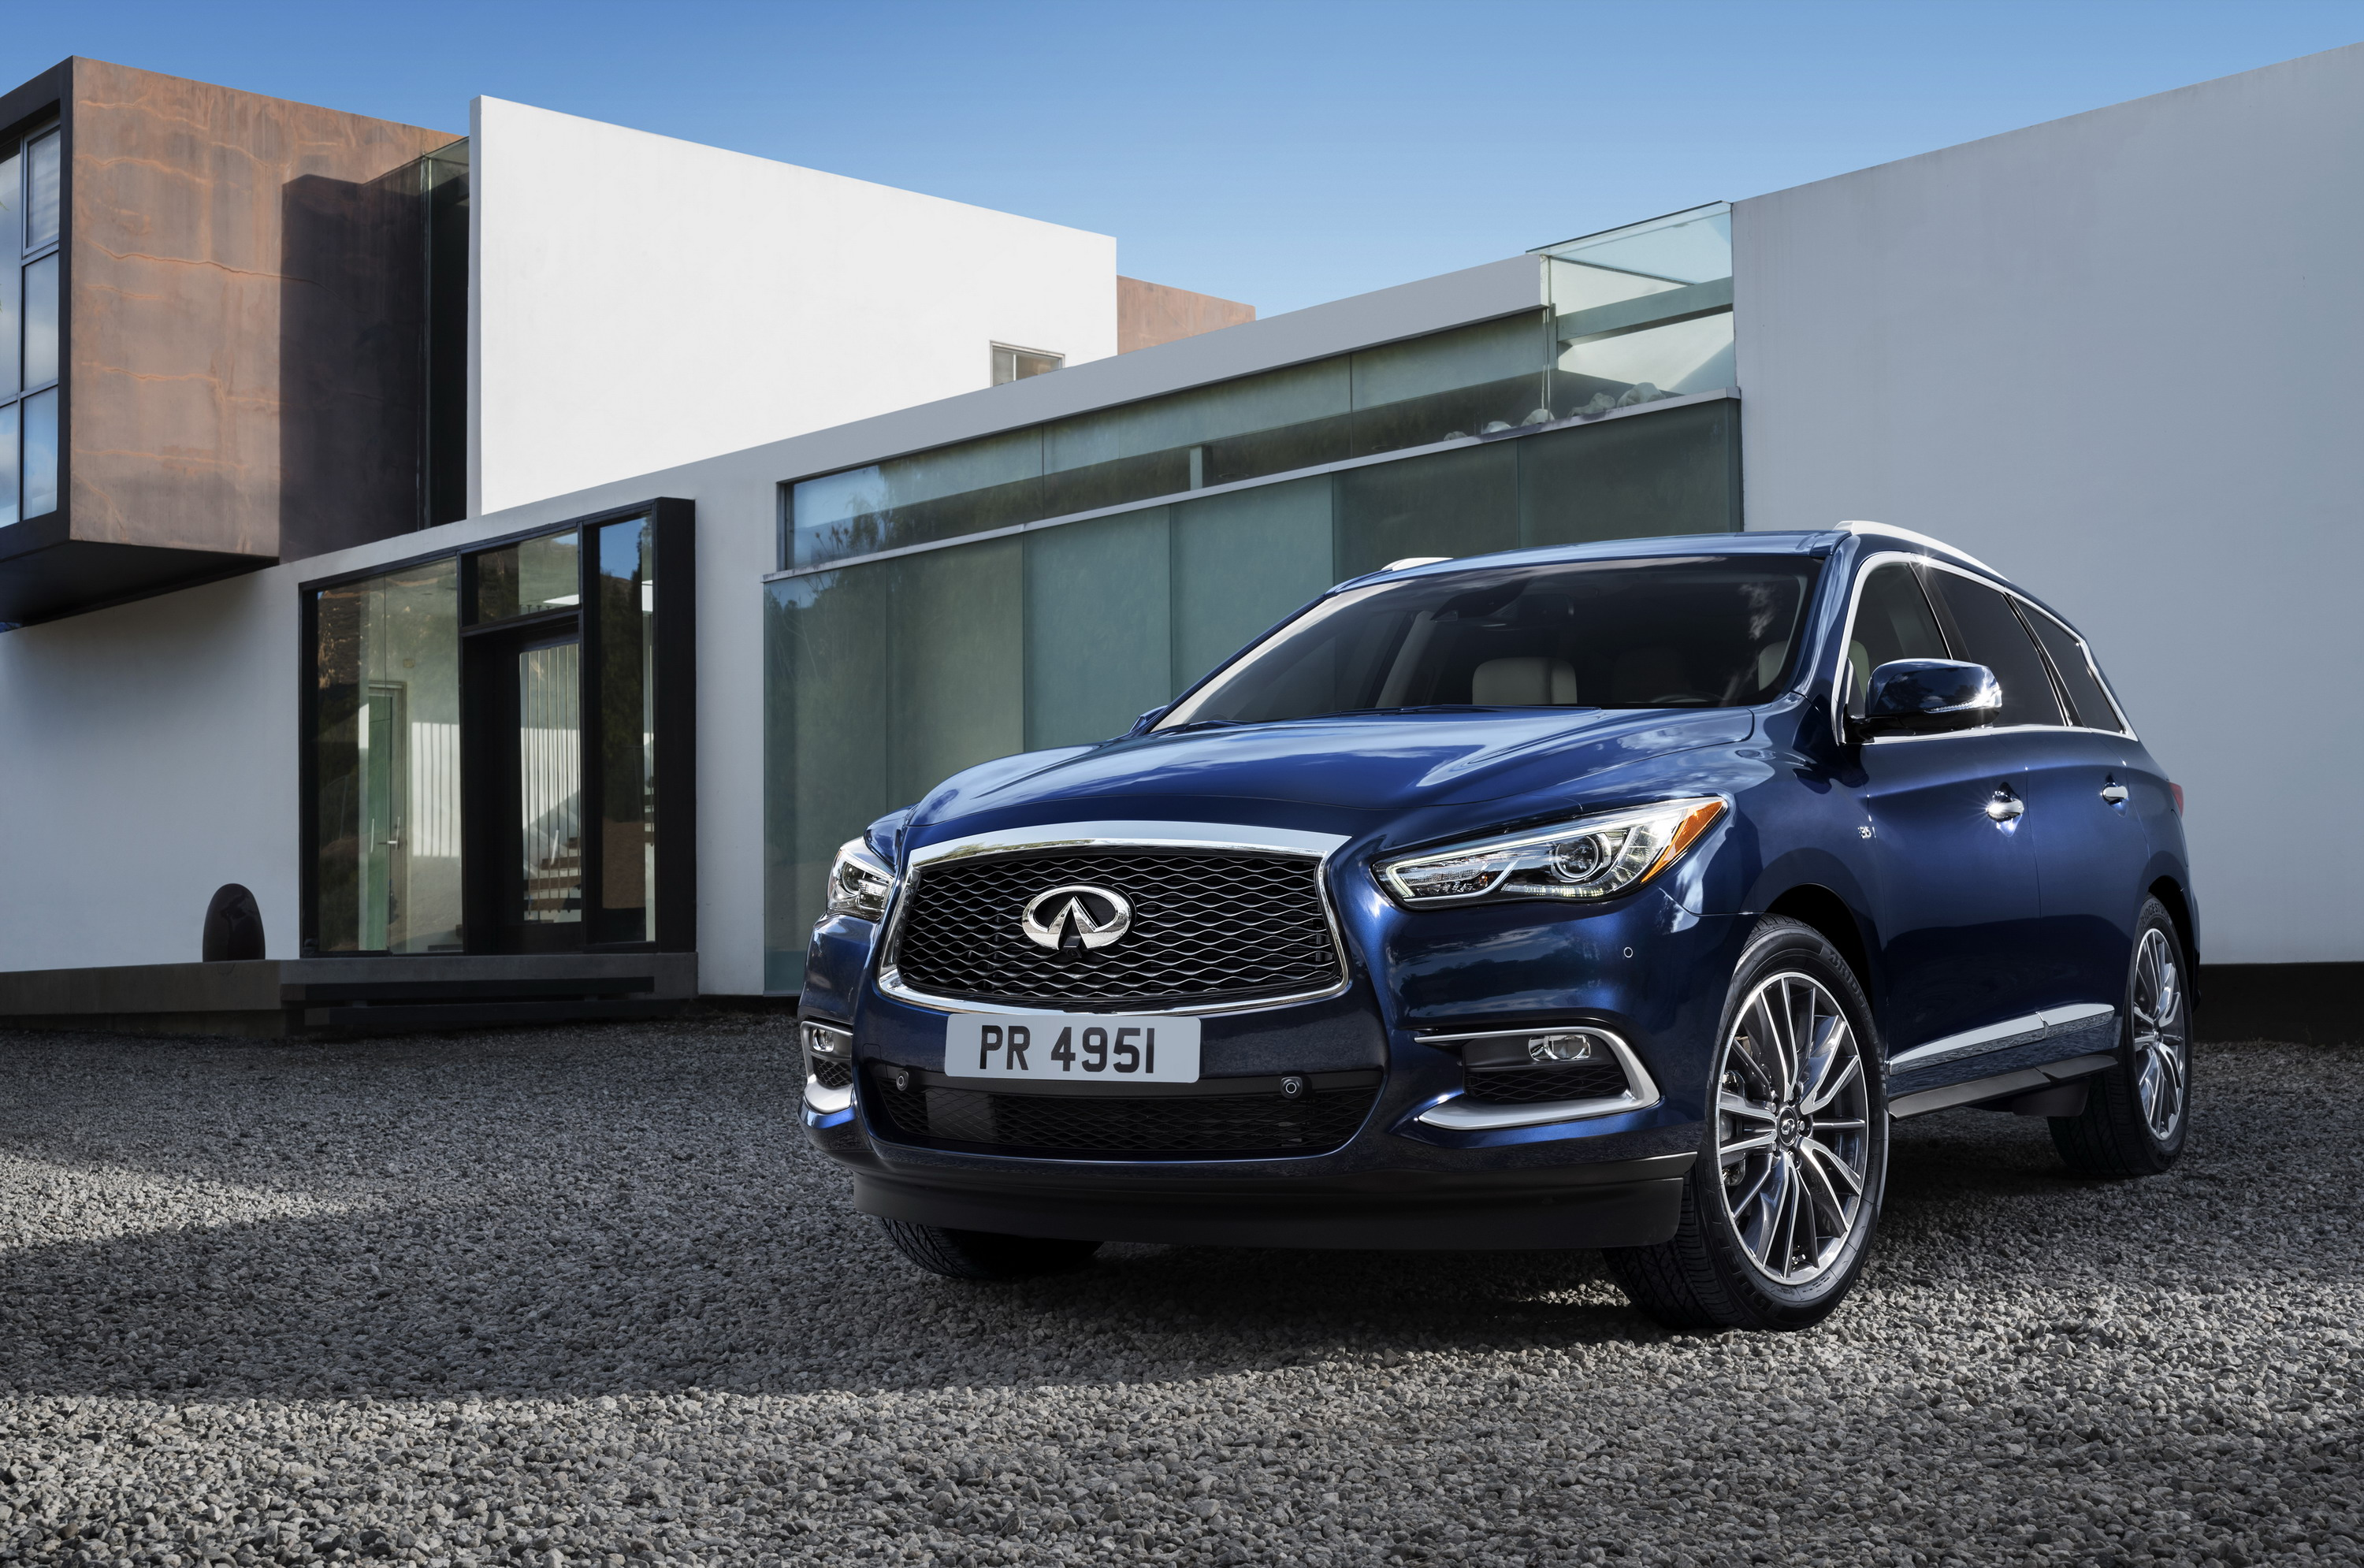 oct reviewmotoring east infiniti video photo suv news infinity reviews middle pm review car